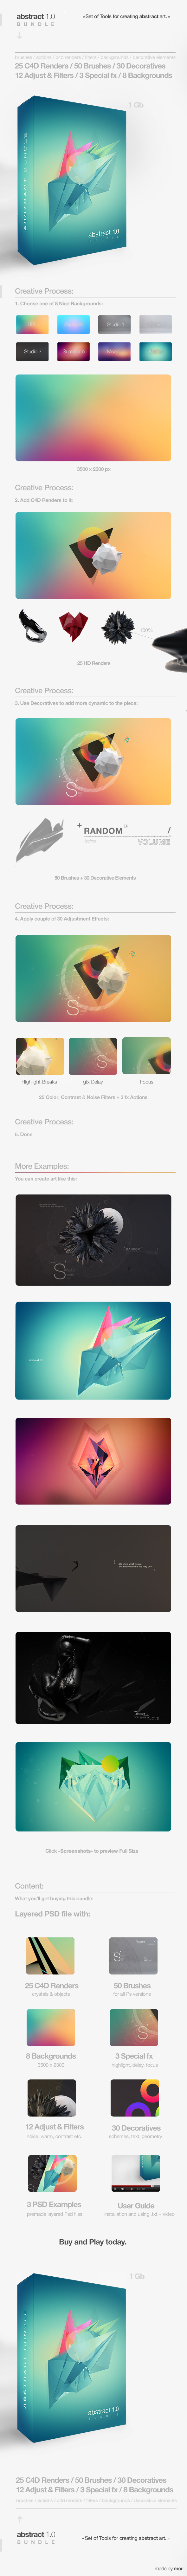 GraphicRiver Abstract 1.0 Bundle 8844011